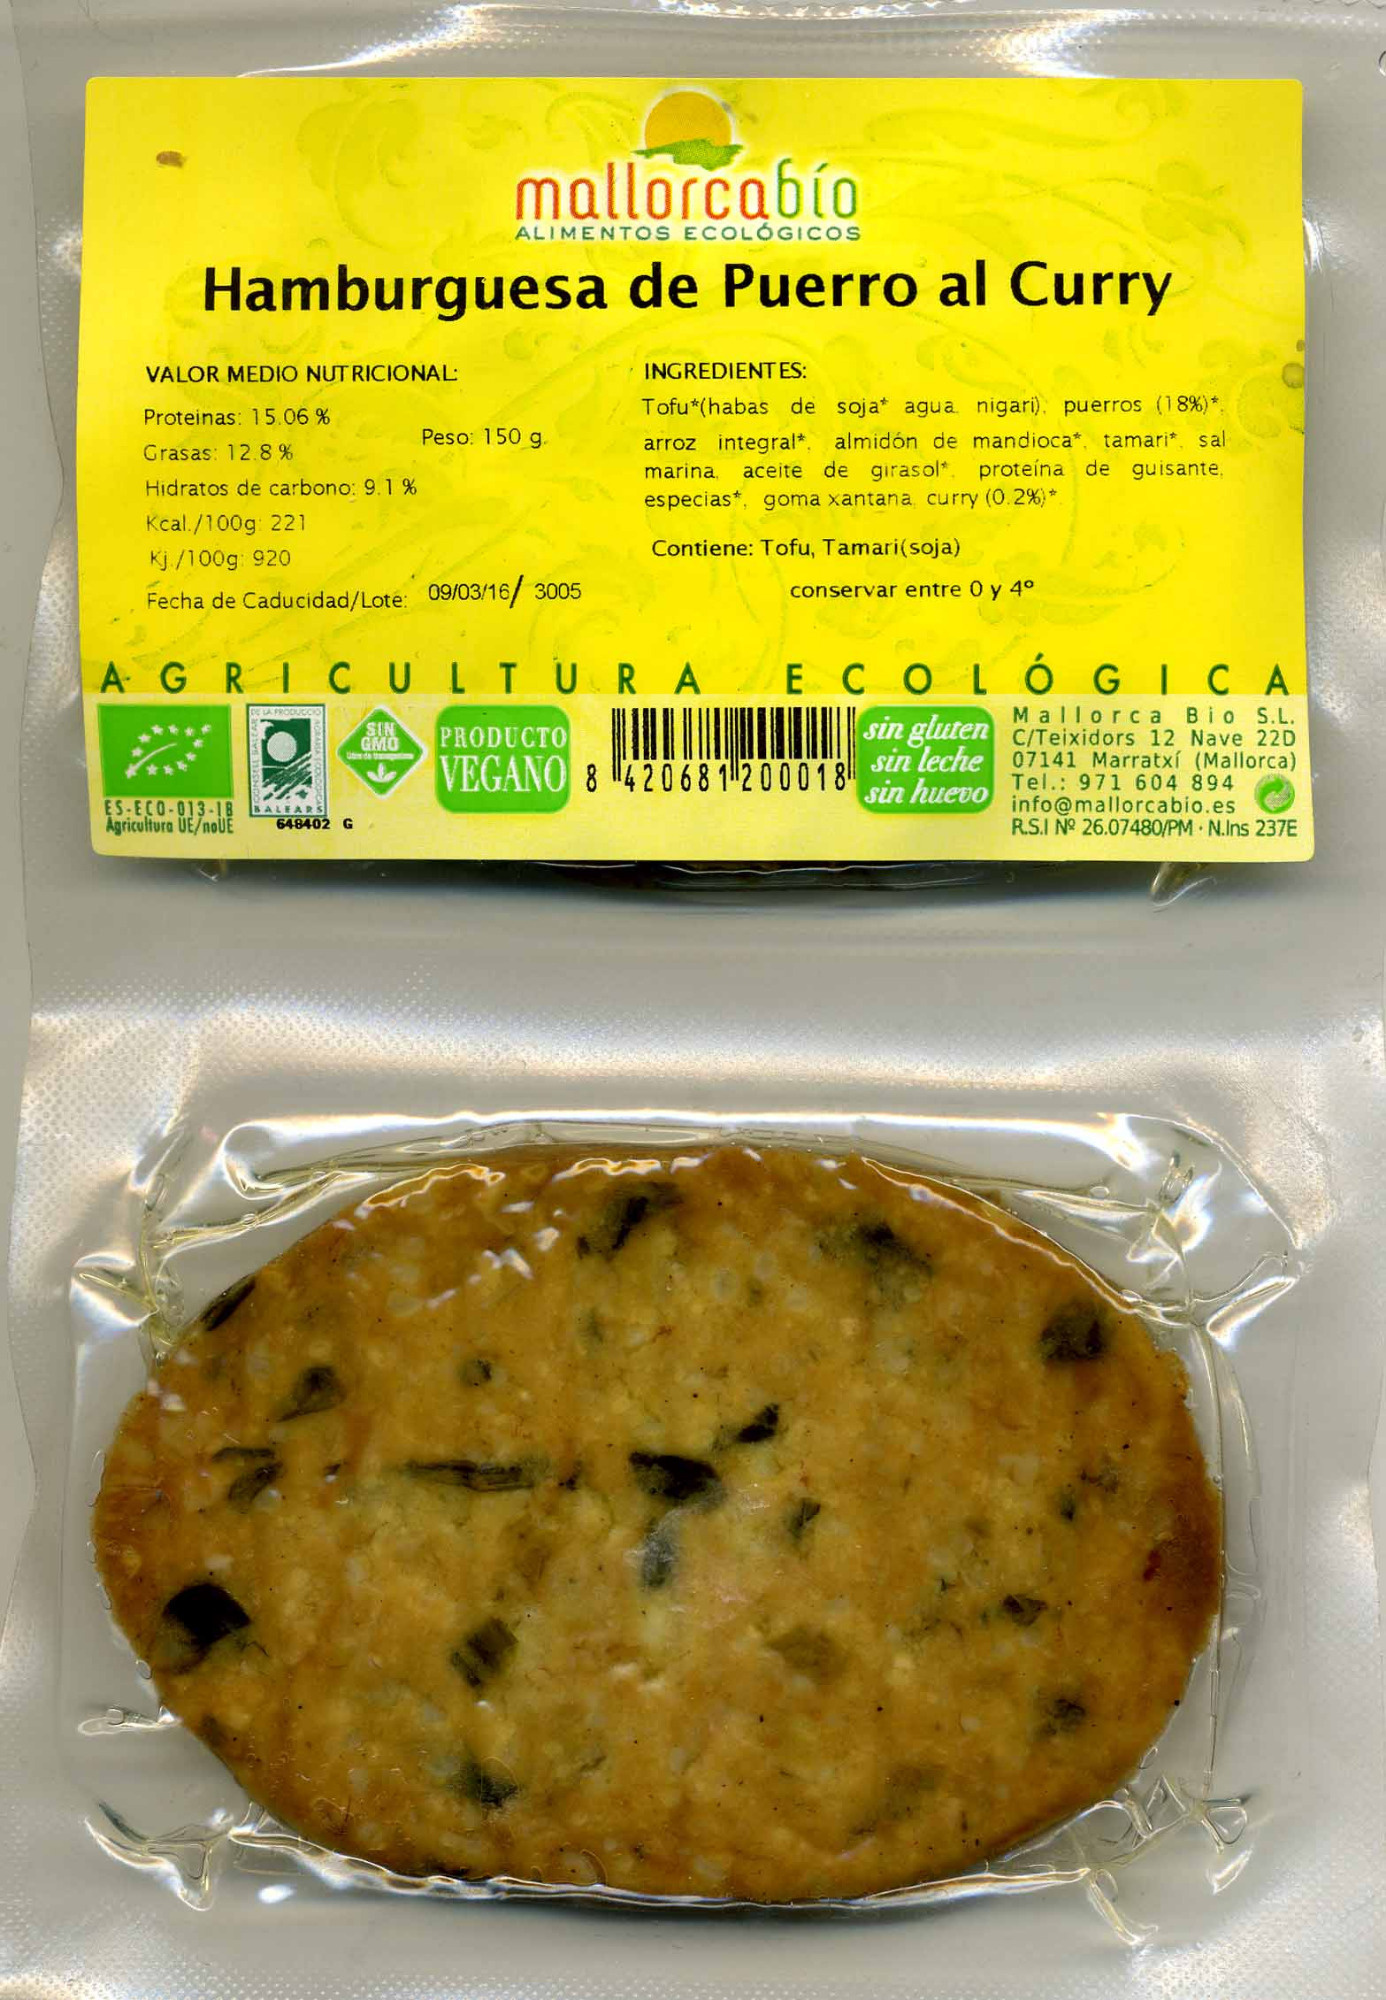 Veggie Burger Puerro al curry - Product - es